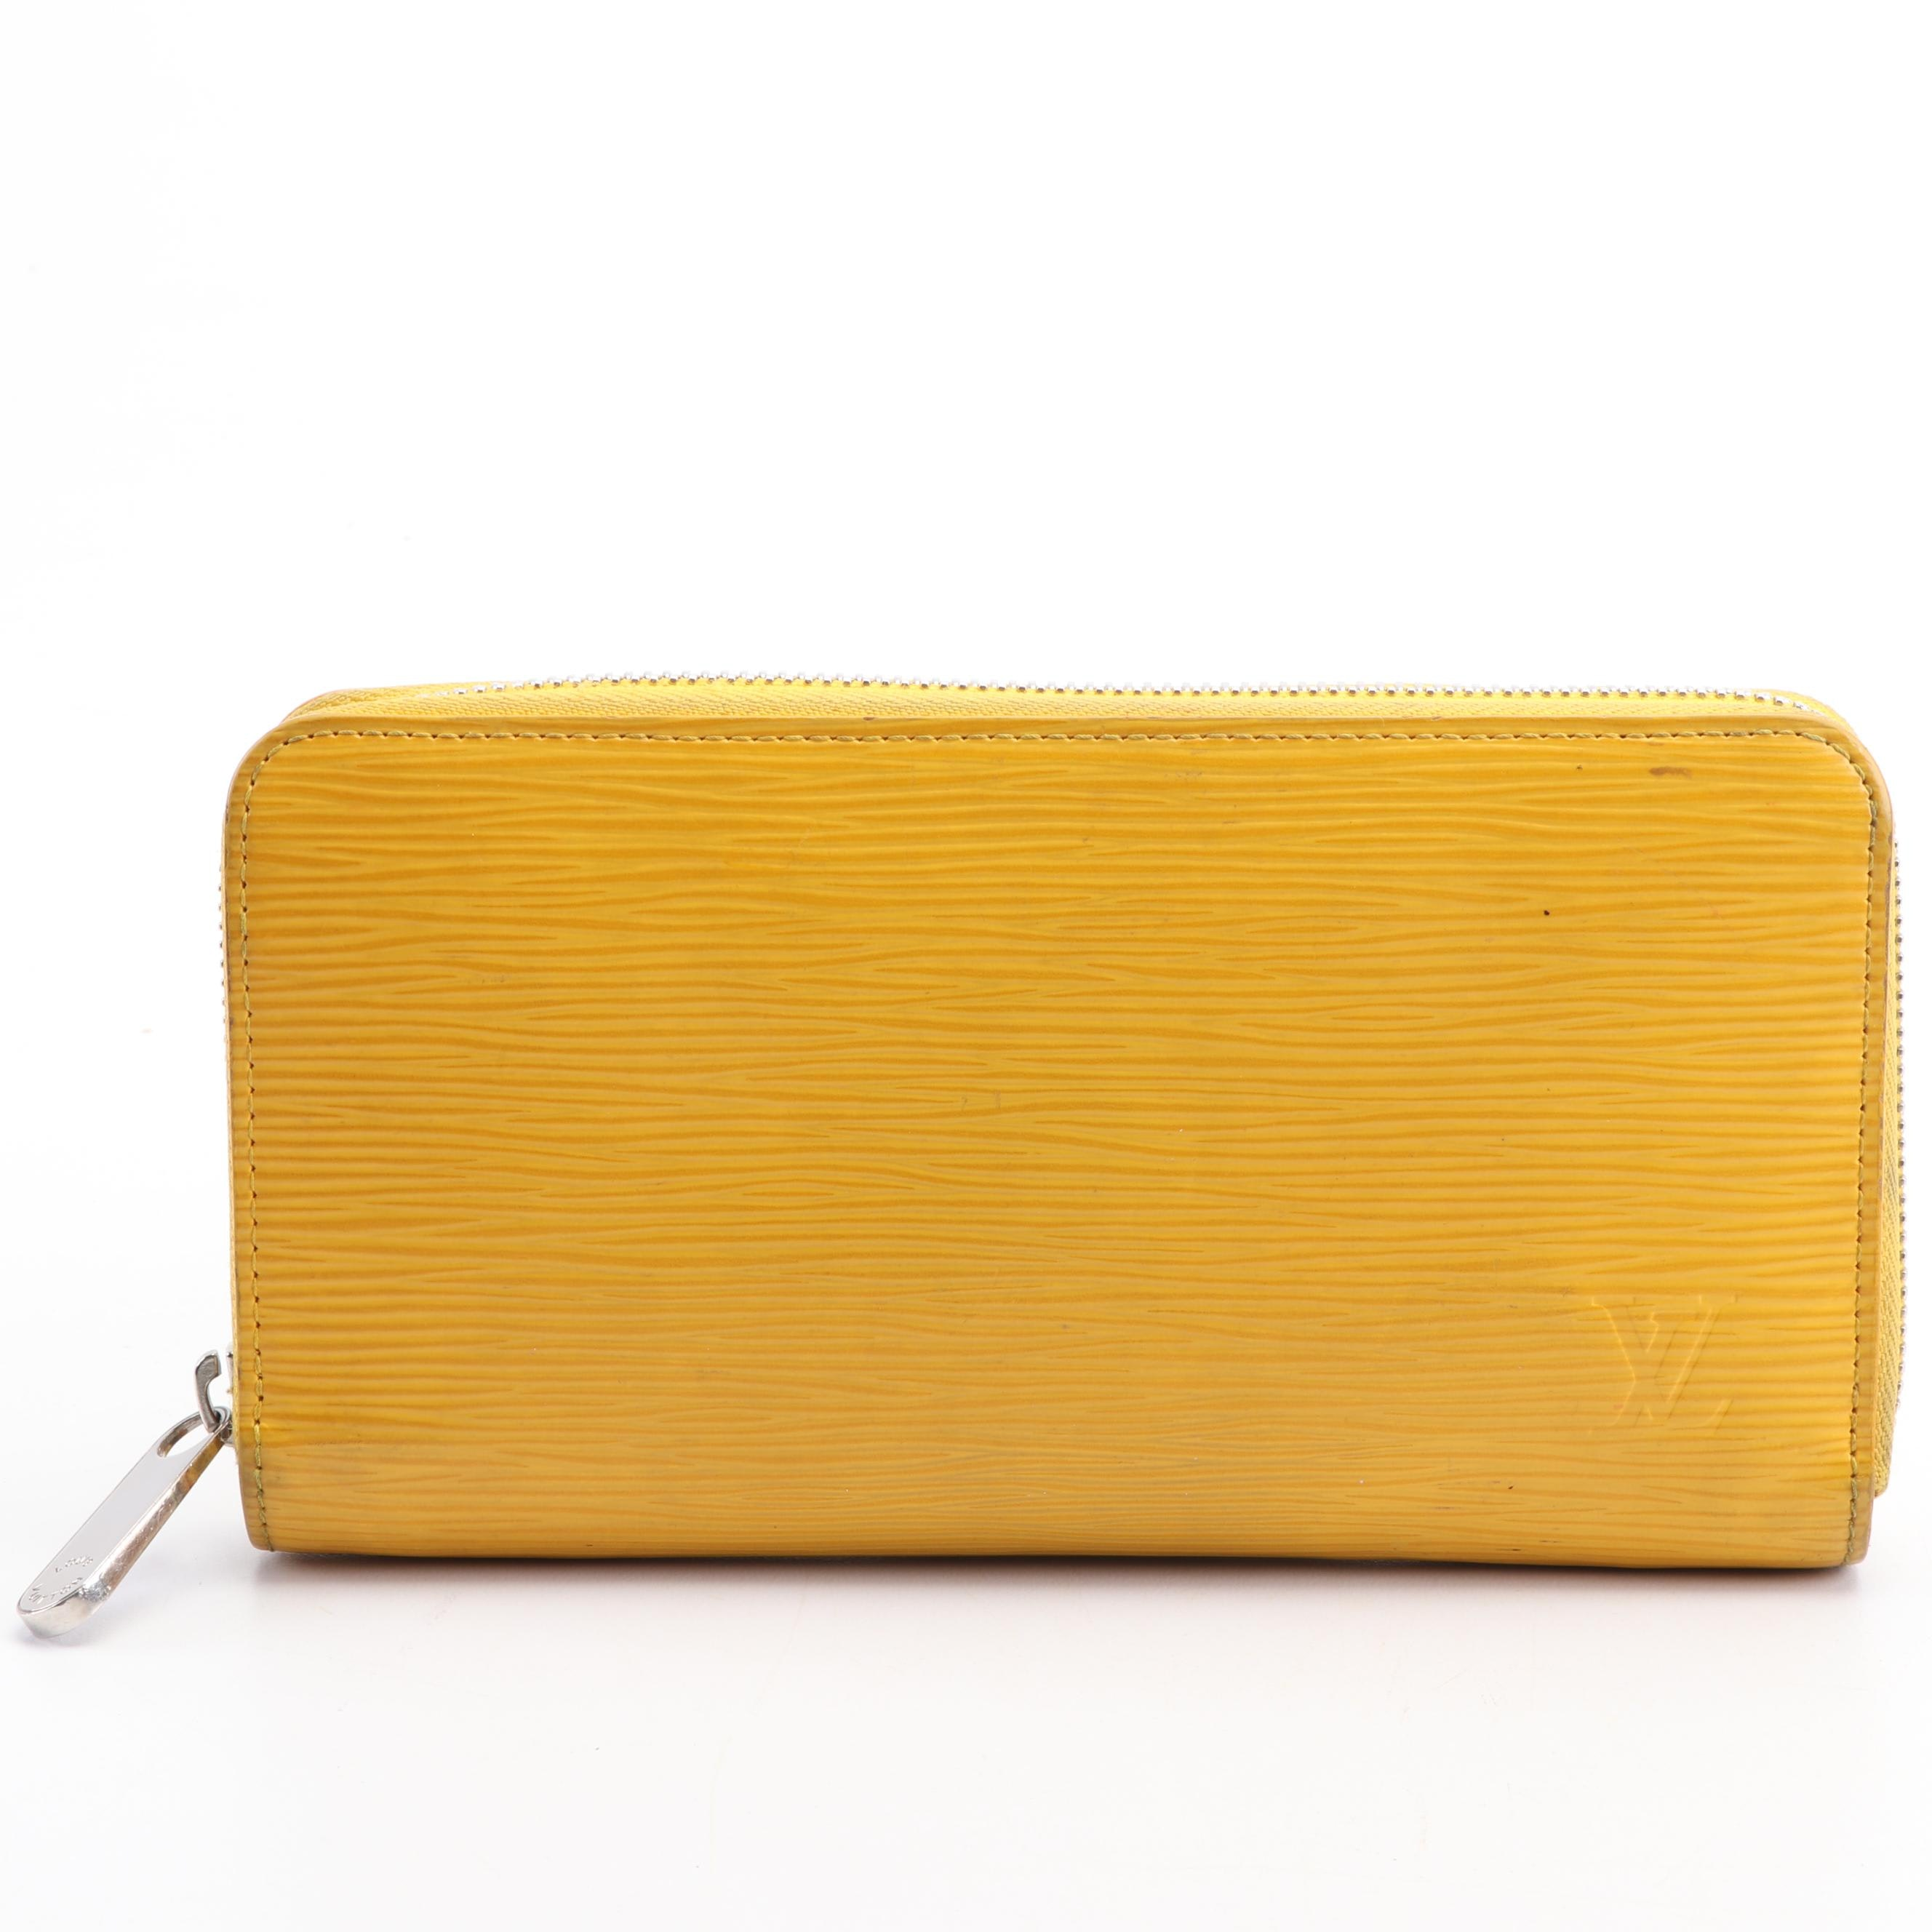 Louis Vuitton Paris Mimosa Yellow Epi Leather Wallet, Made in Spain, 2013